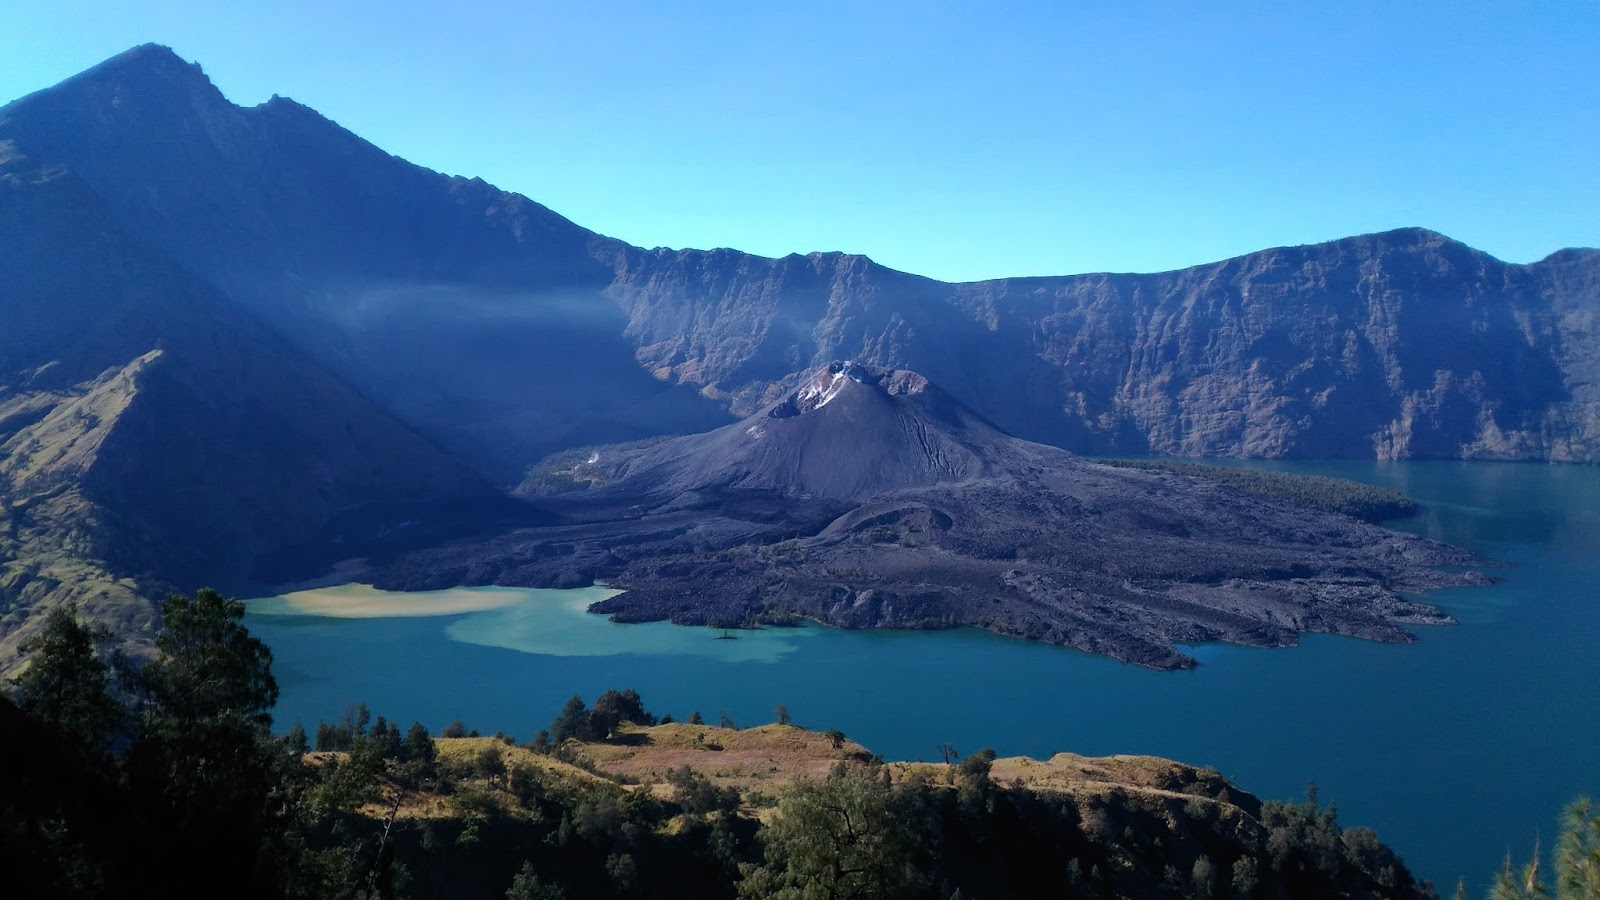 Climbing mount rinjani package lombok island indonesia about us - The Mighty Rinjani Mountain Is A Massive Volcano Which Towers Over The Island Of Lombok A Climb To The Top Is One Of The Most Exhilarating Experiences You